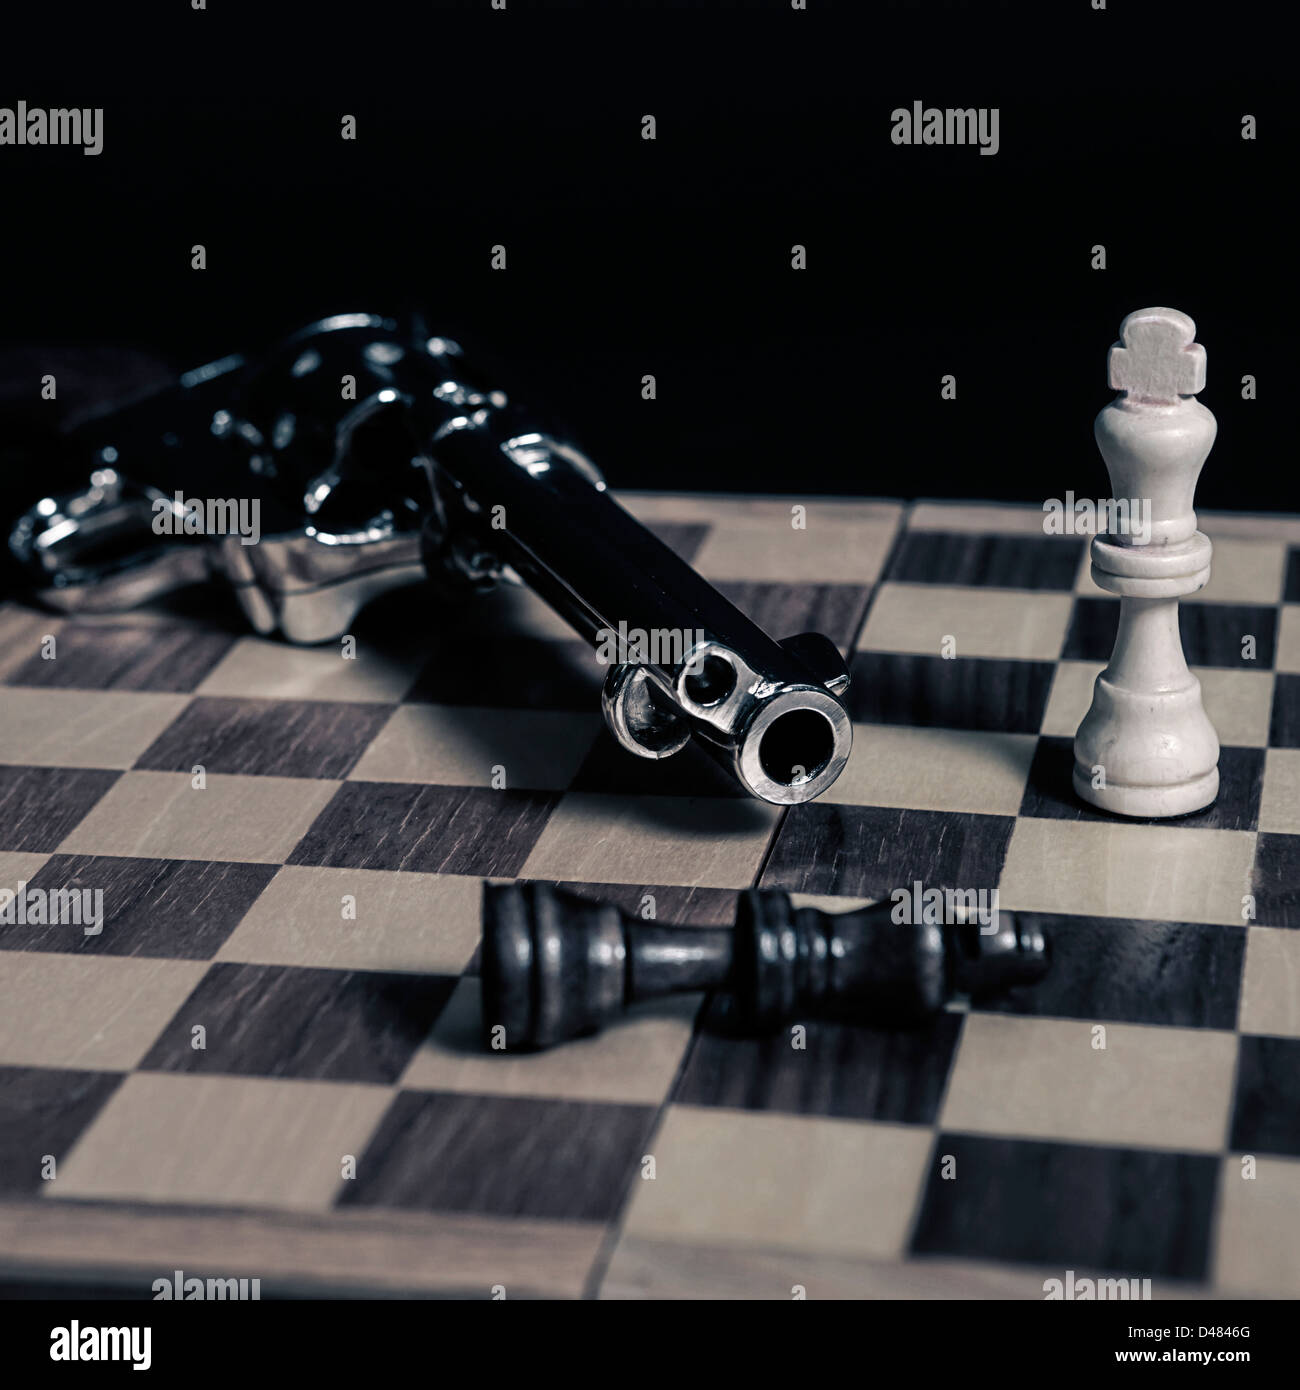 the black king was shot - Stock Image